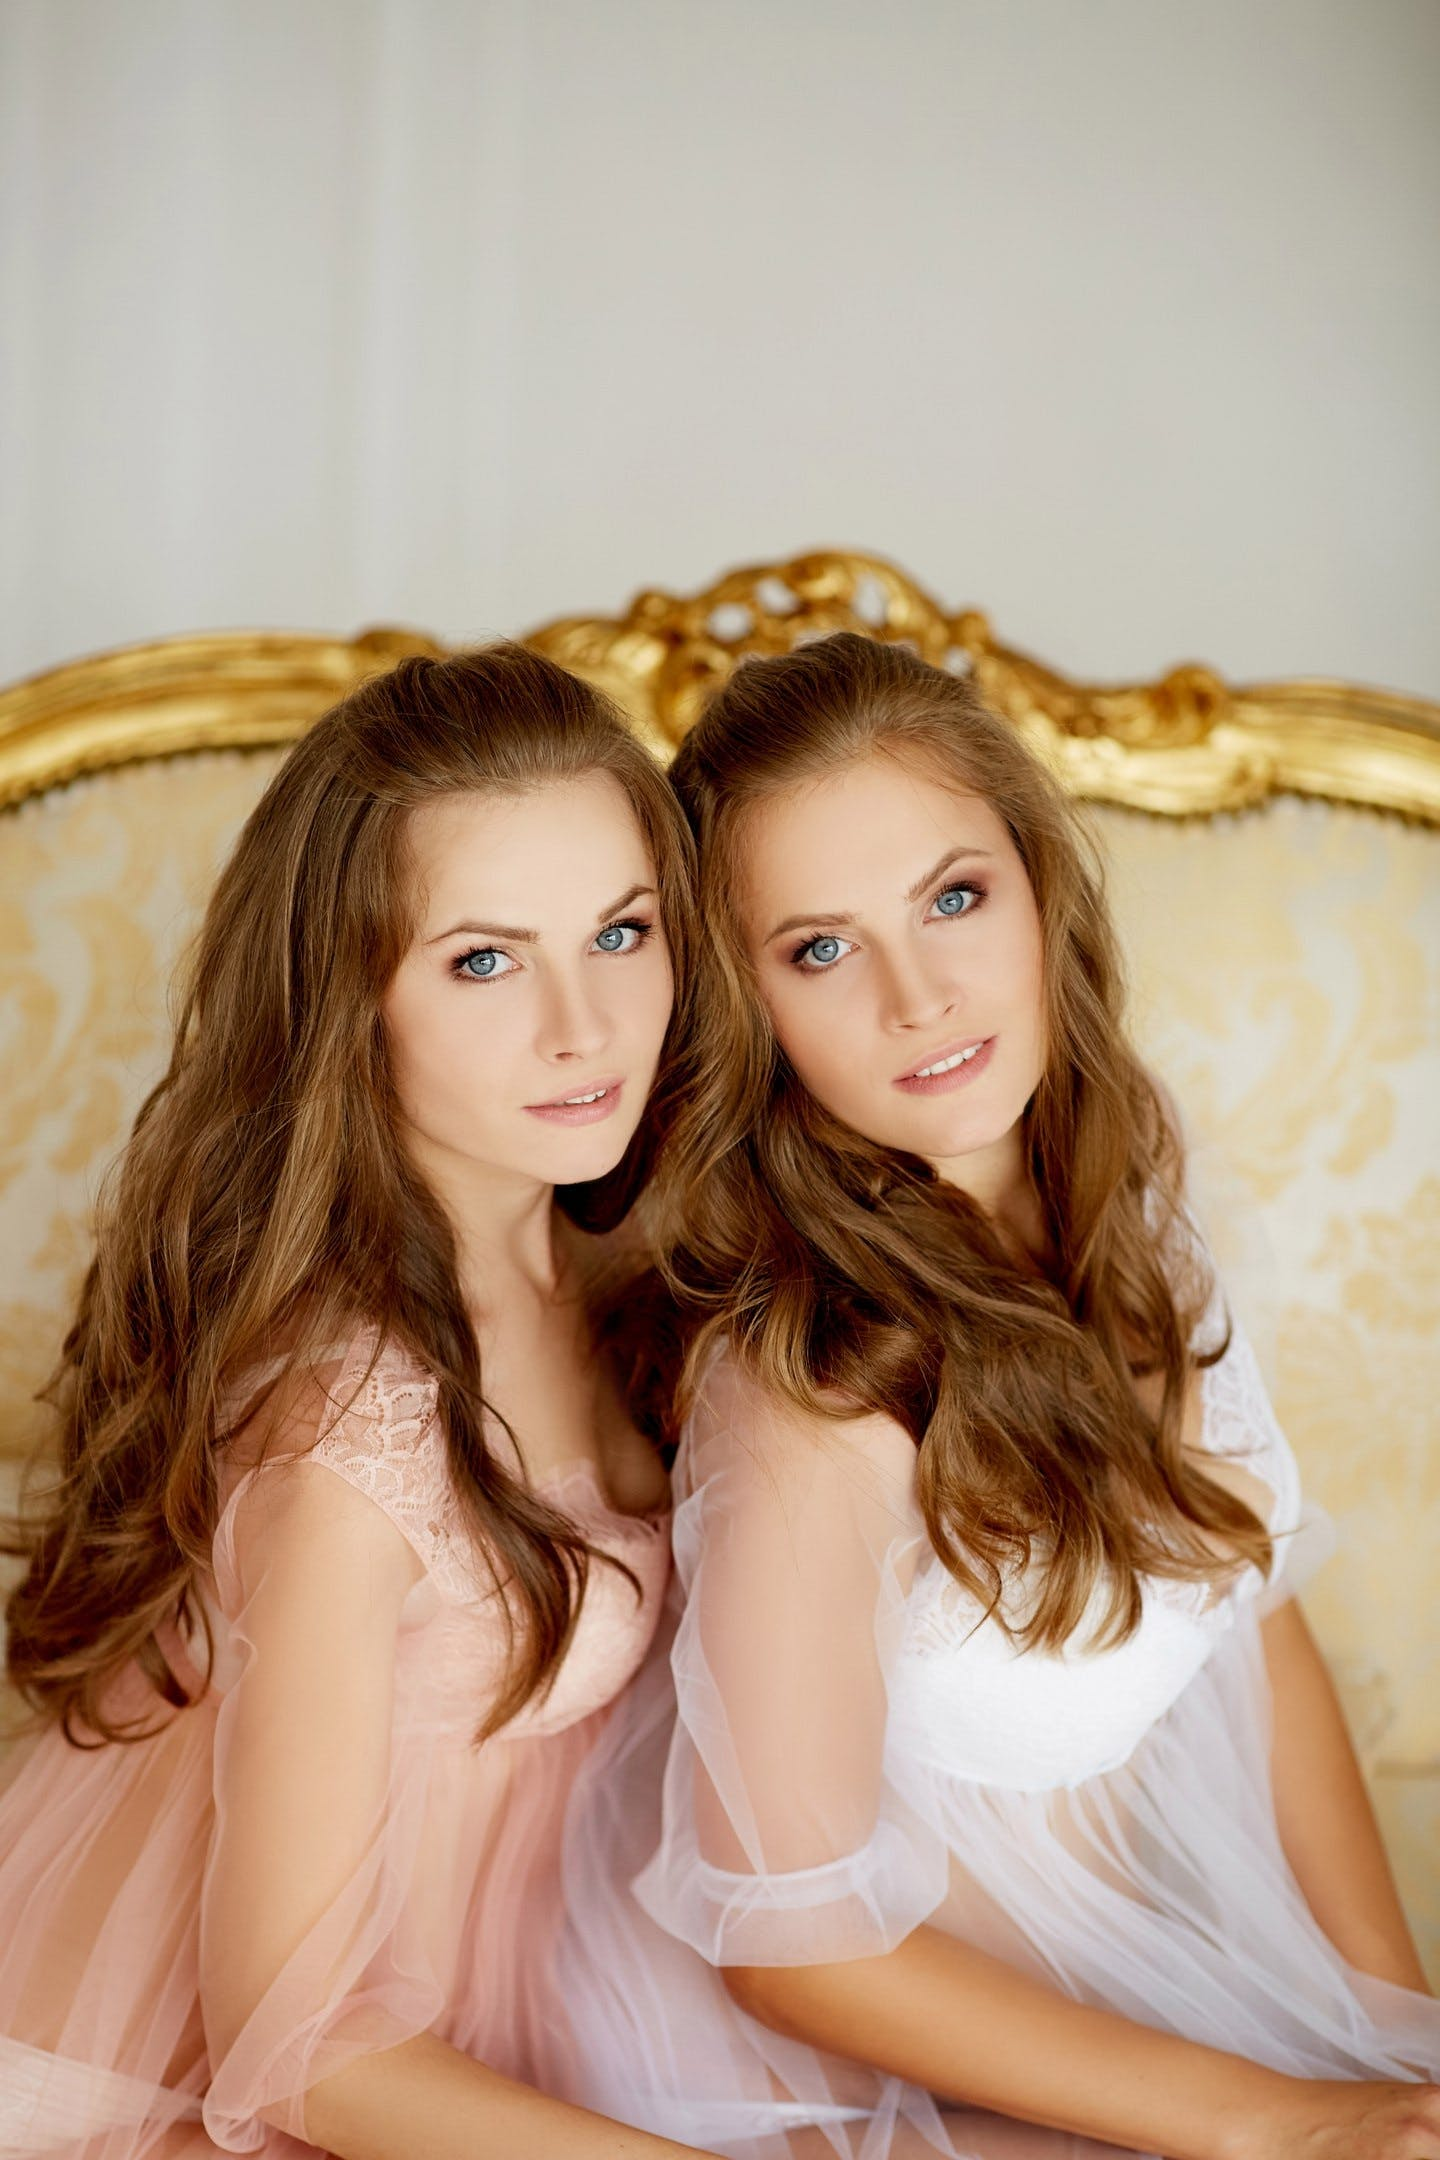 Two Women's Wearing White and Pink Sheer Tops Sitting on Bed